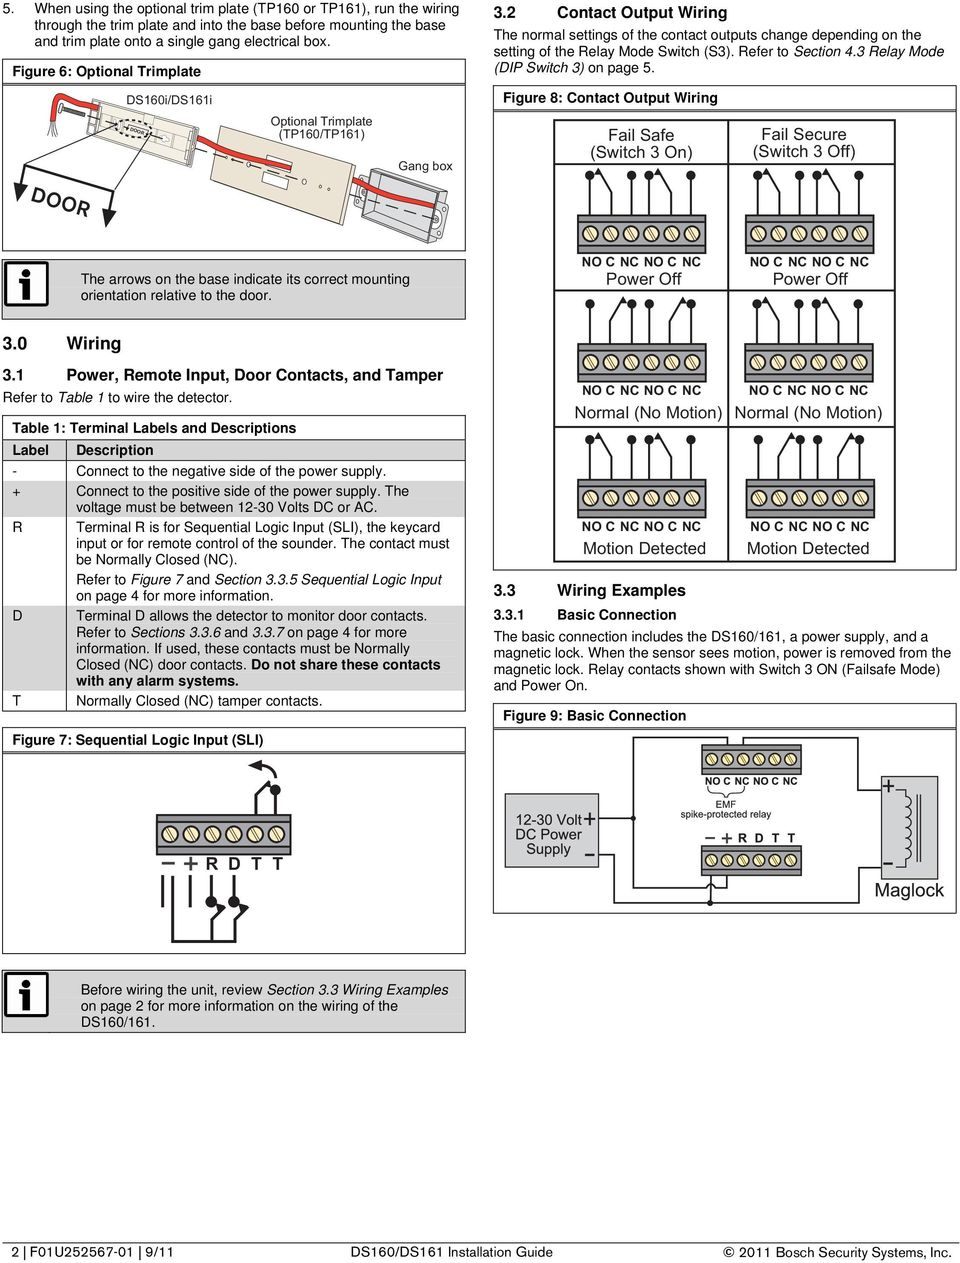 hight resolution of 2 contact output wiring the normal settings of the contact outputs change depending on the setting